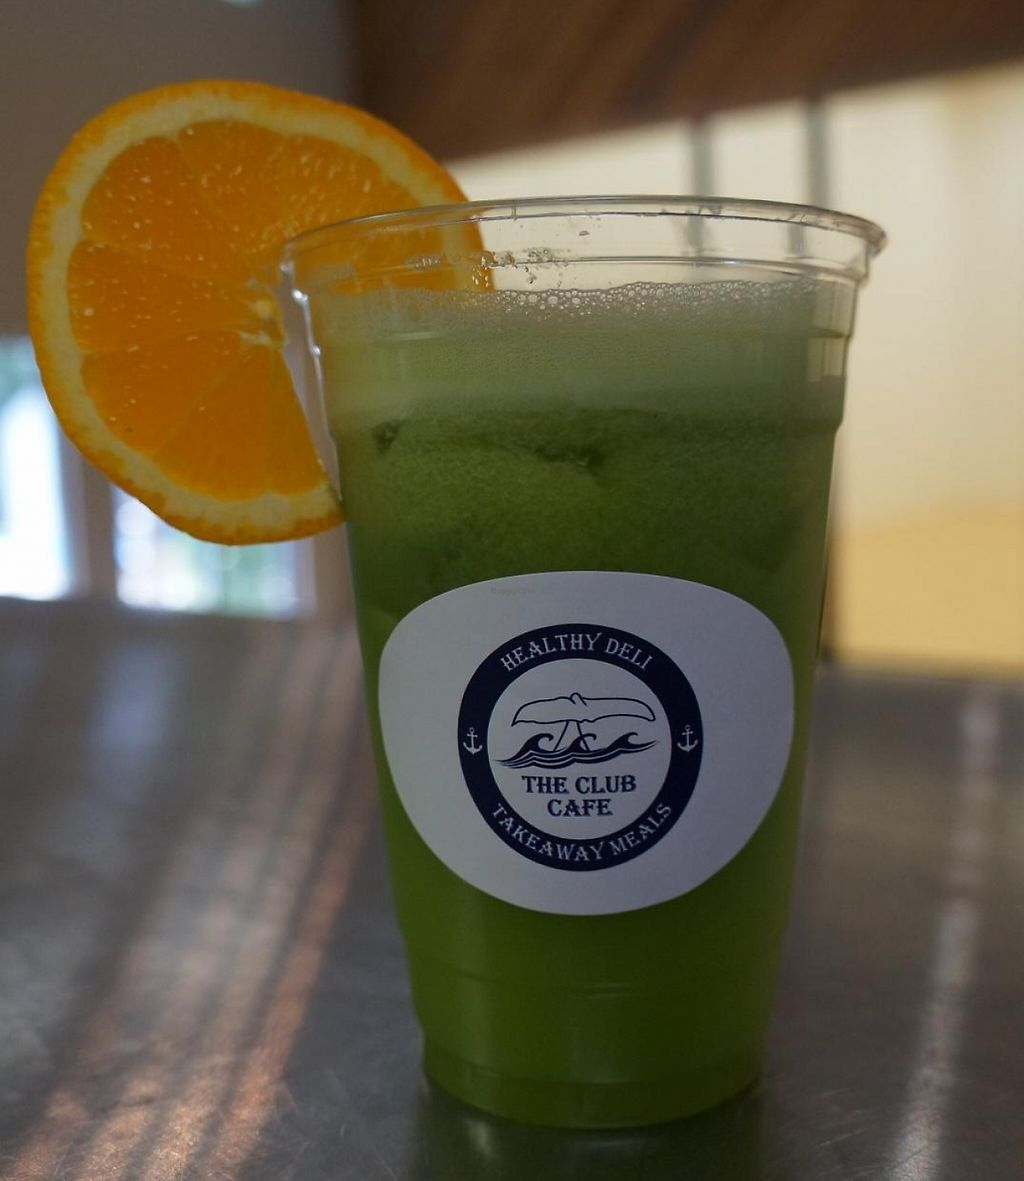 """Photo of CLOSED: The Club Cafe  by <a href=""""/members/profile/piglet"""">piglet</a> <br/>Green Machine - pear, avocado, spinach, matcha powder, cucumber, vanilla soy milk <br/> May 20, 2016  - <a href='/contact/abuse/image/73474/198958'>Report</a>"""